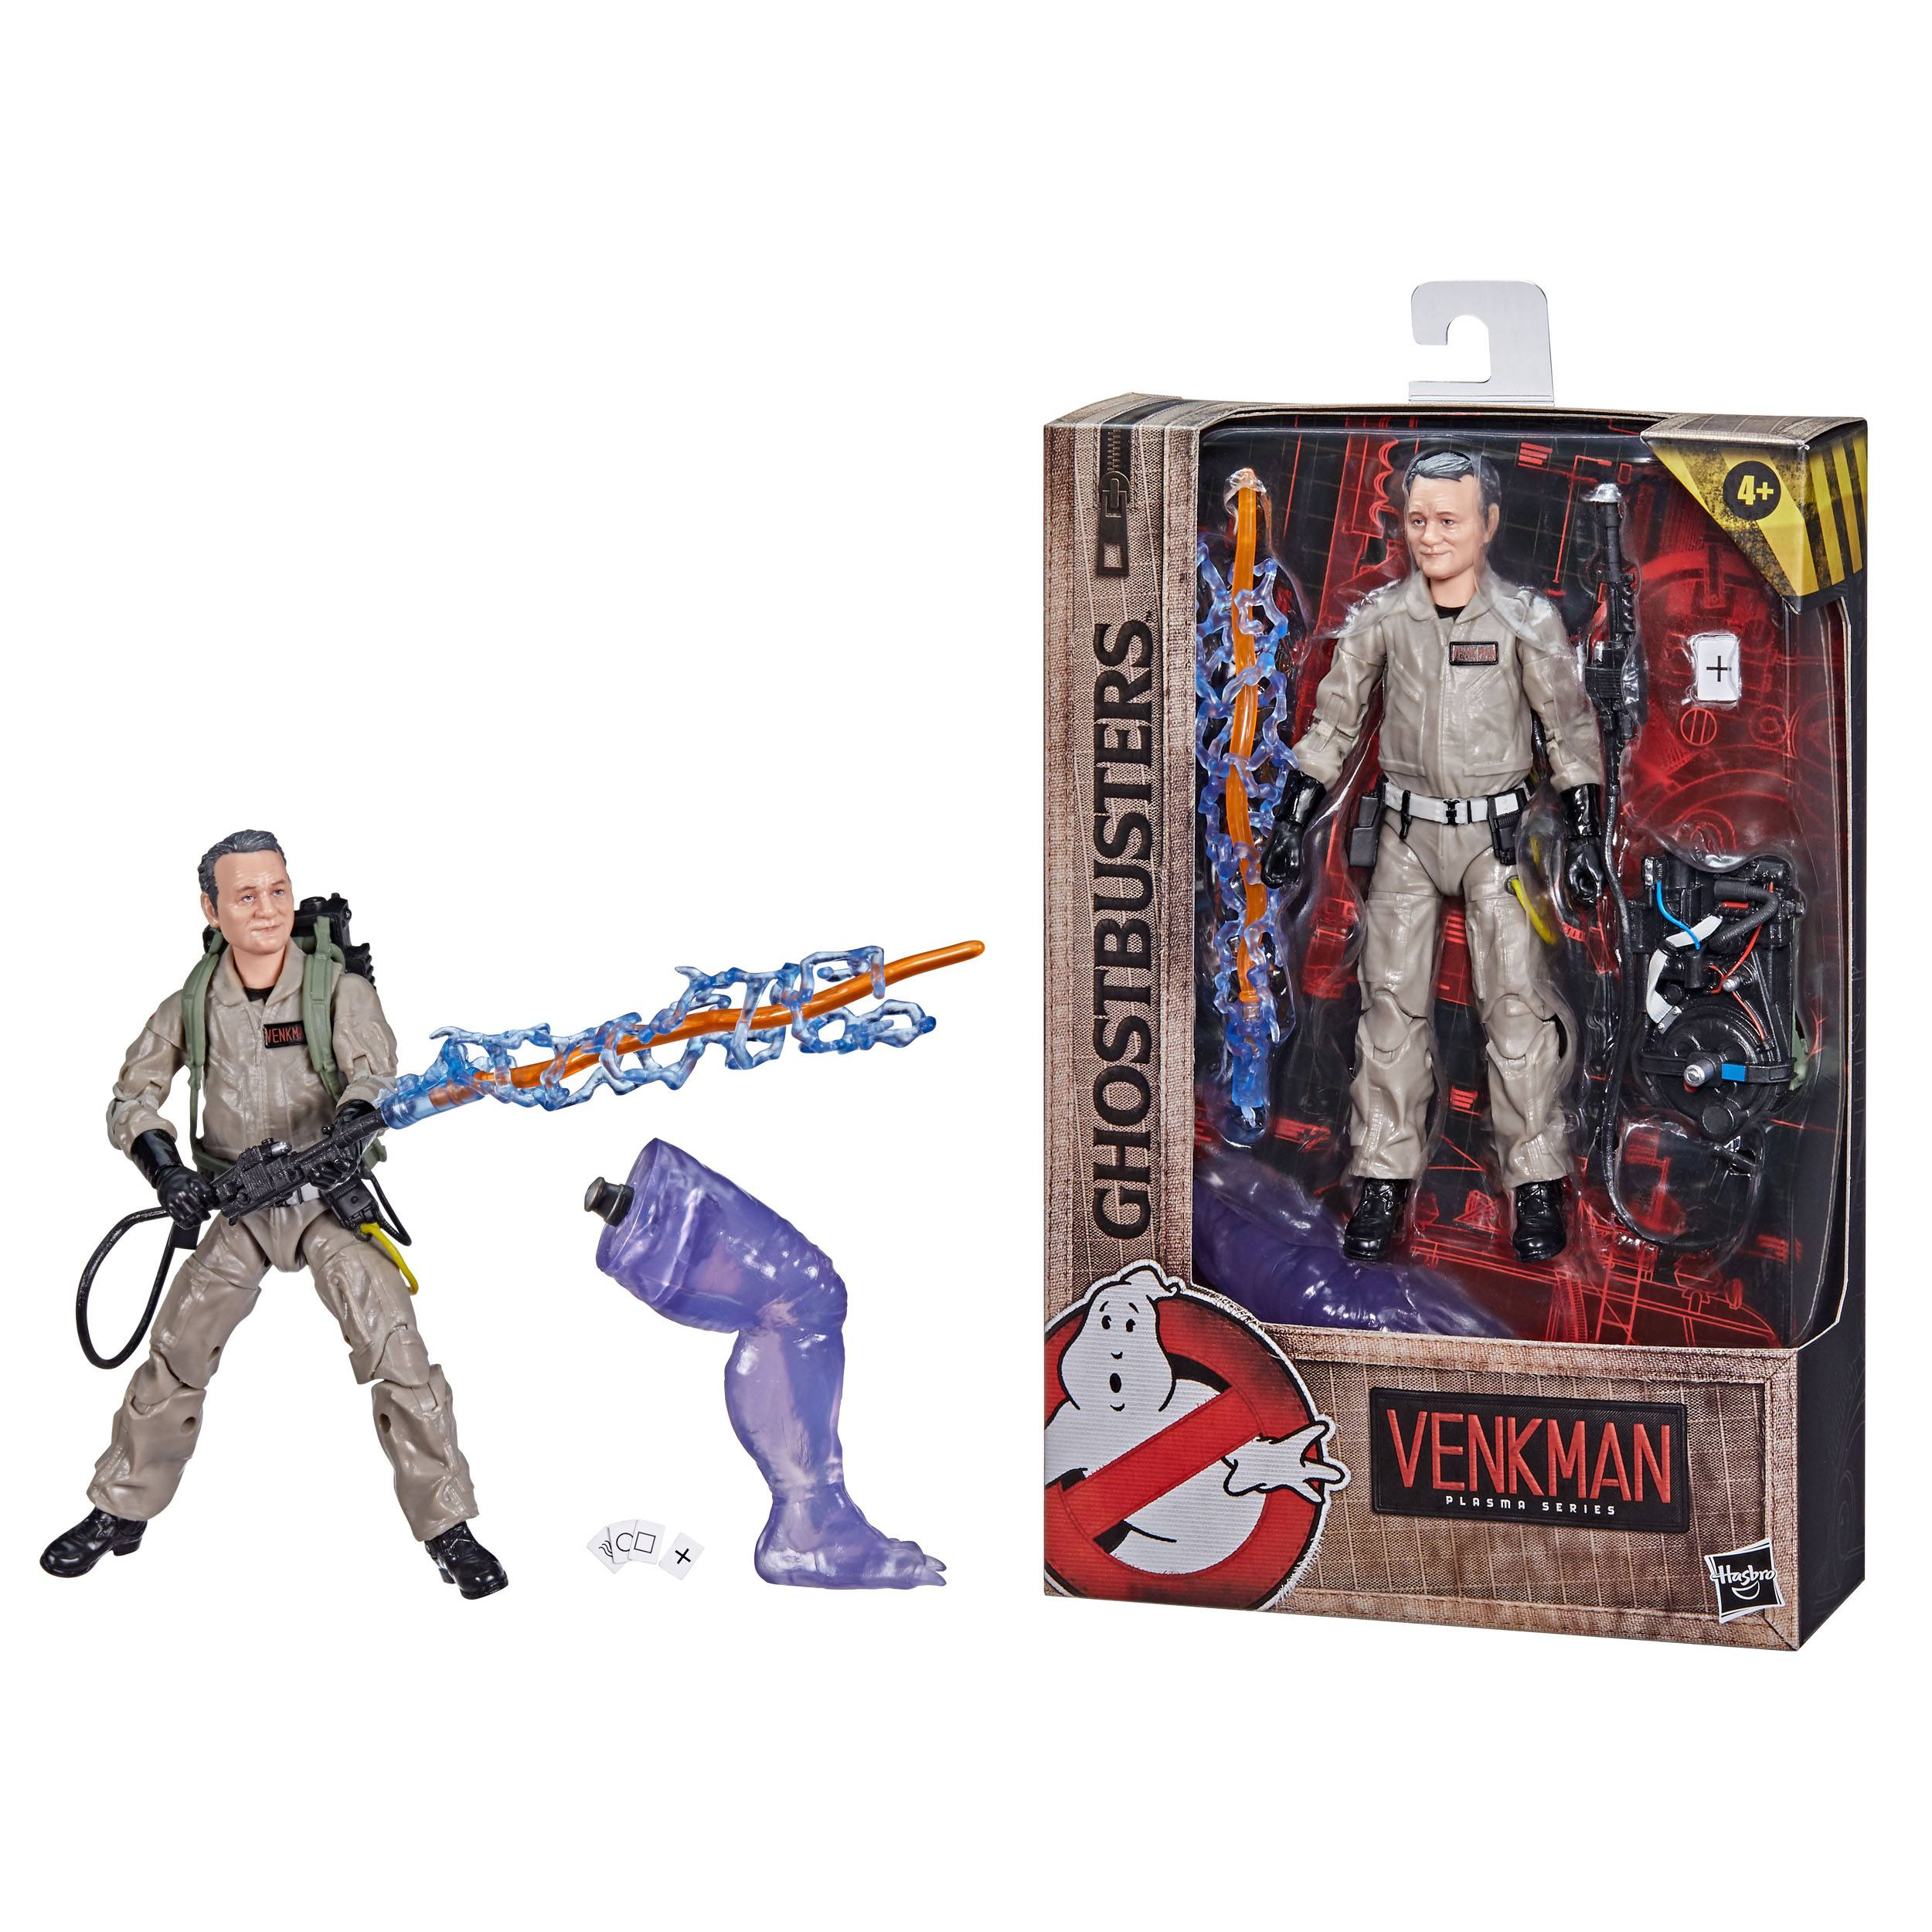 Ghostbusters Plasma Series Afterlife Figures Assortment (7) Wave F12525L00 5010993855094